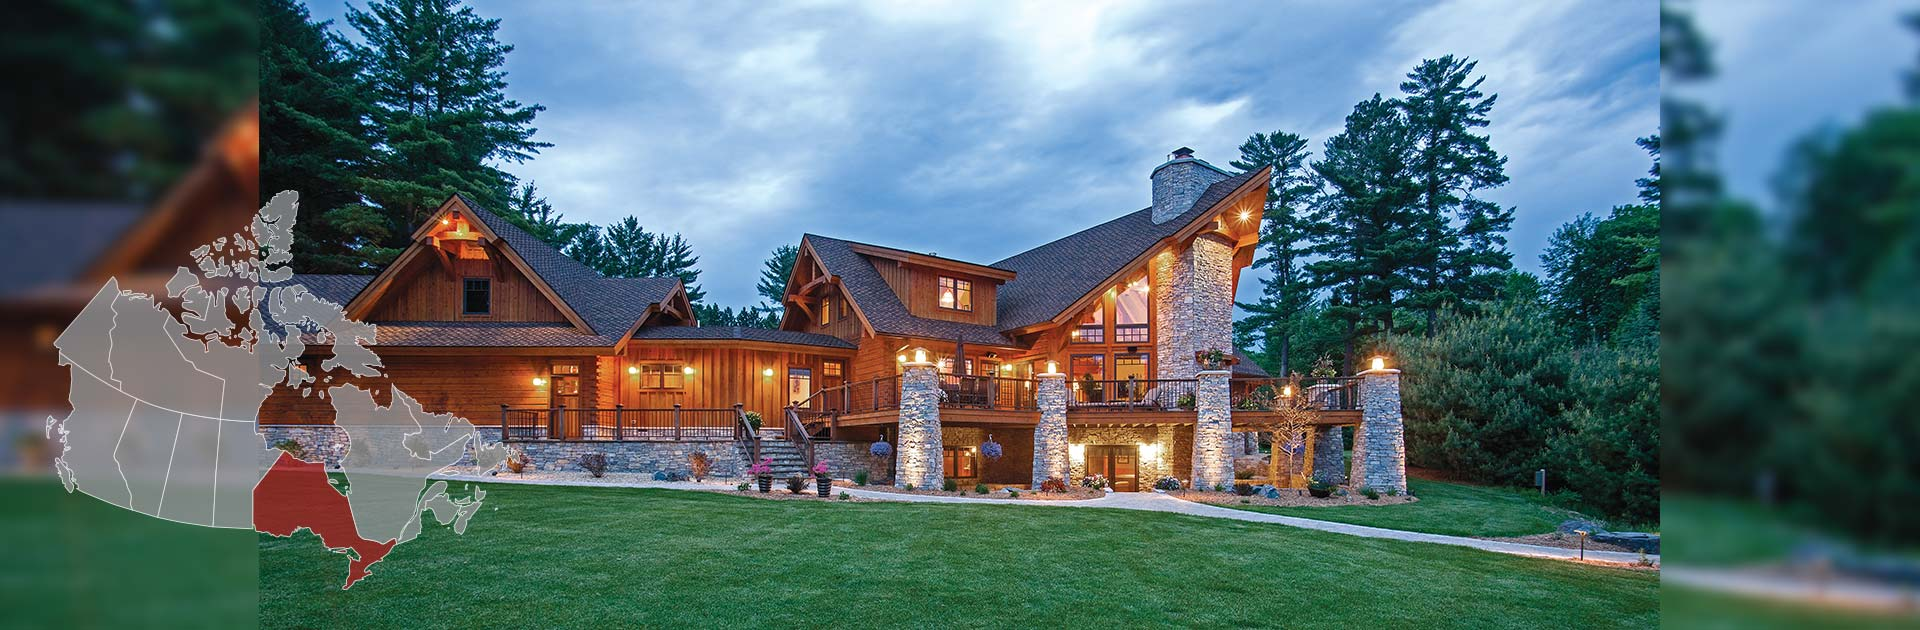 Ontario log homes and timber cottages by precisioncraft for Log home plans ontario